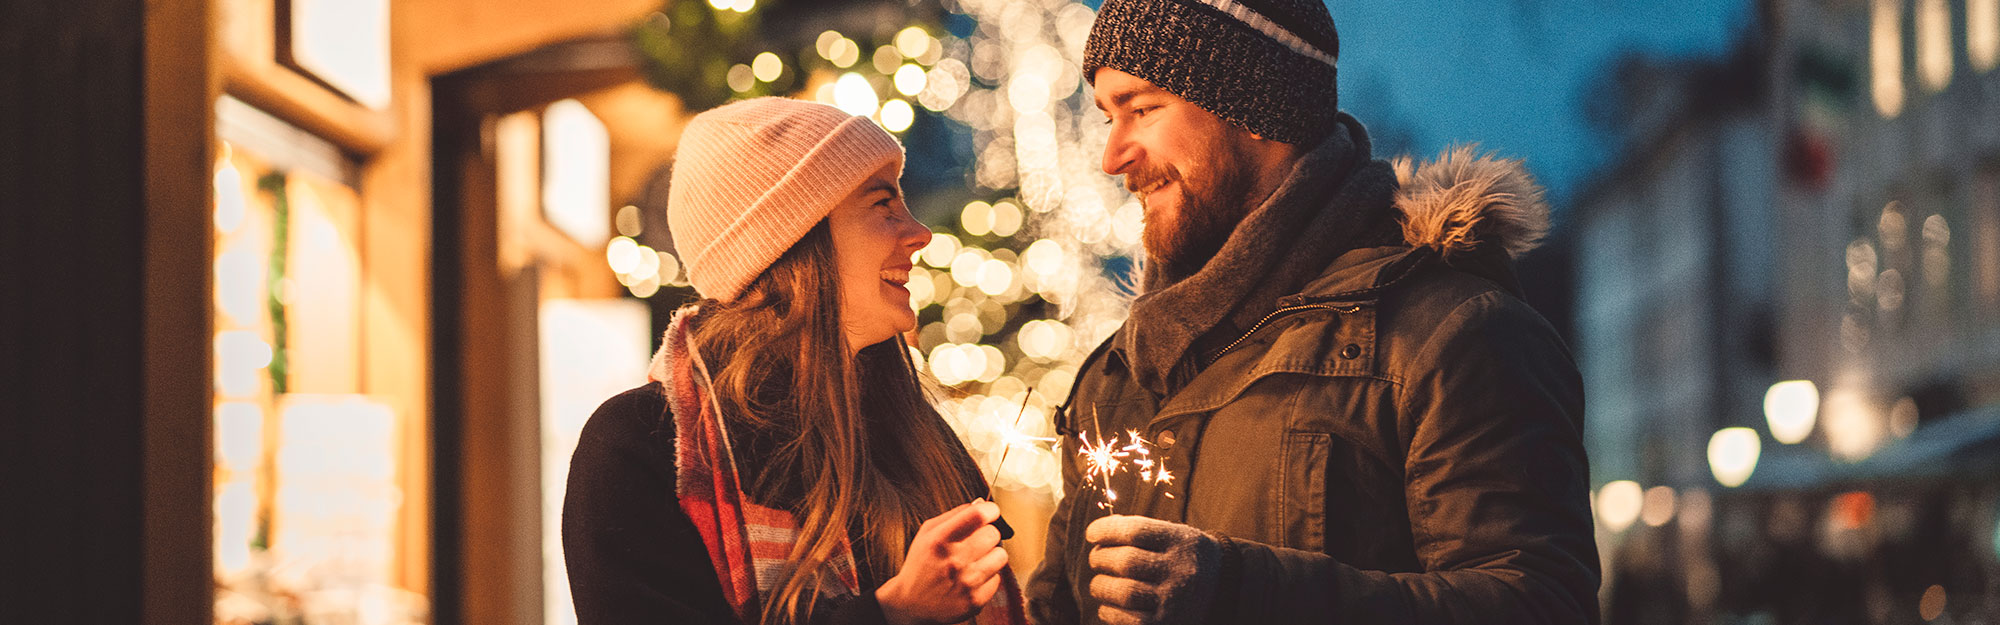 Couple at christmas holding sparklers.